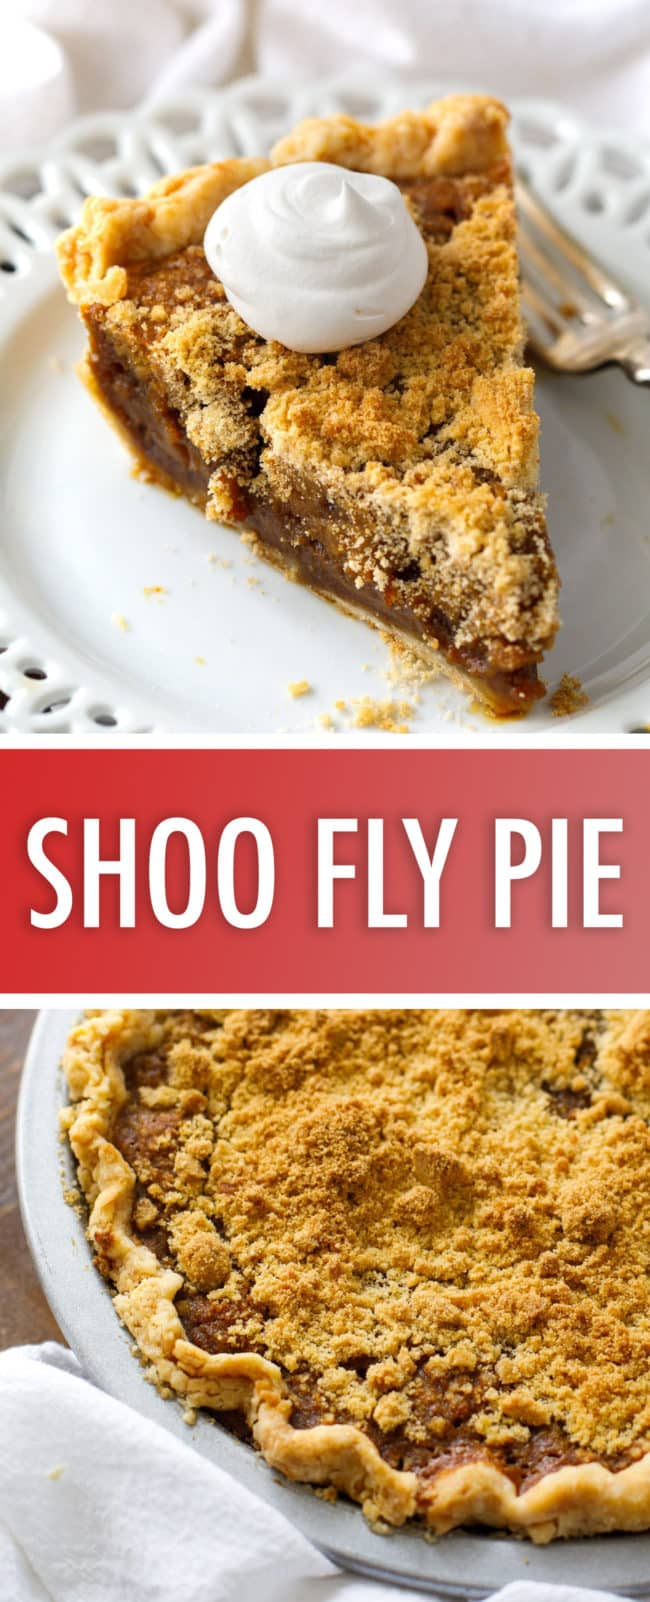 Authentic Amish Shoo Fly Pie Recipe